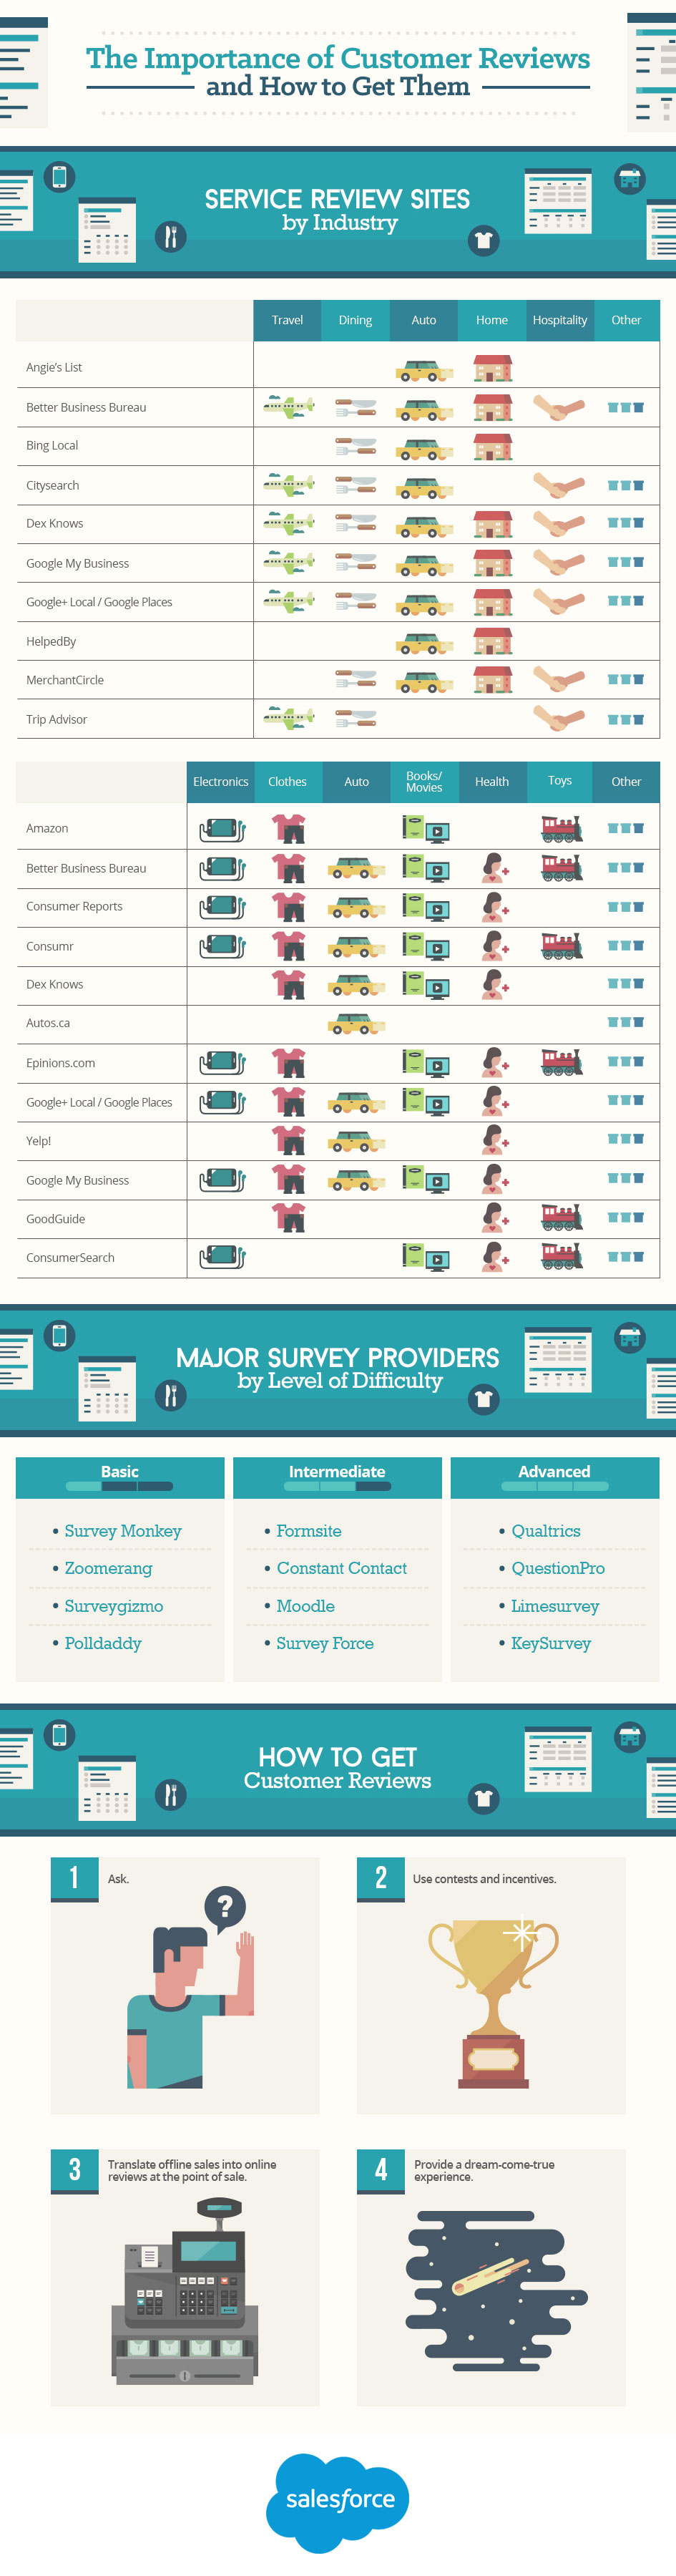 importance-of-customer-reviews-infographic